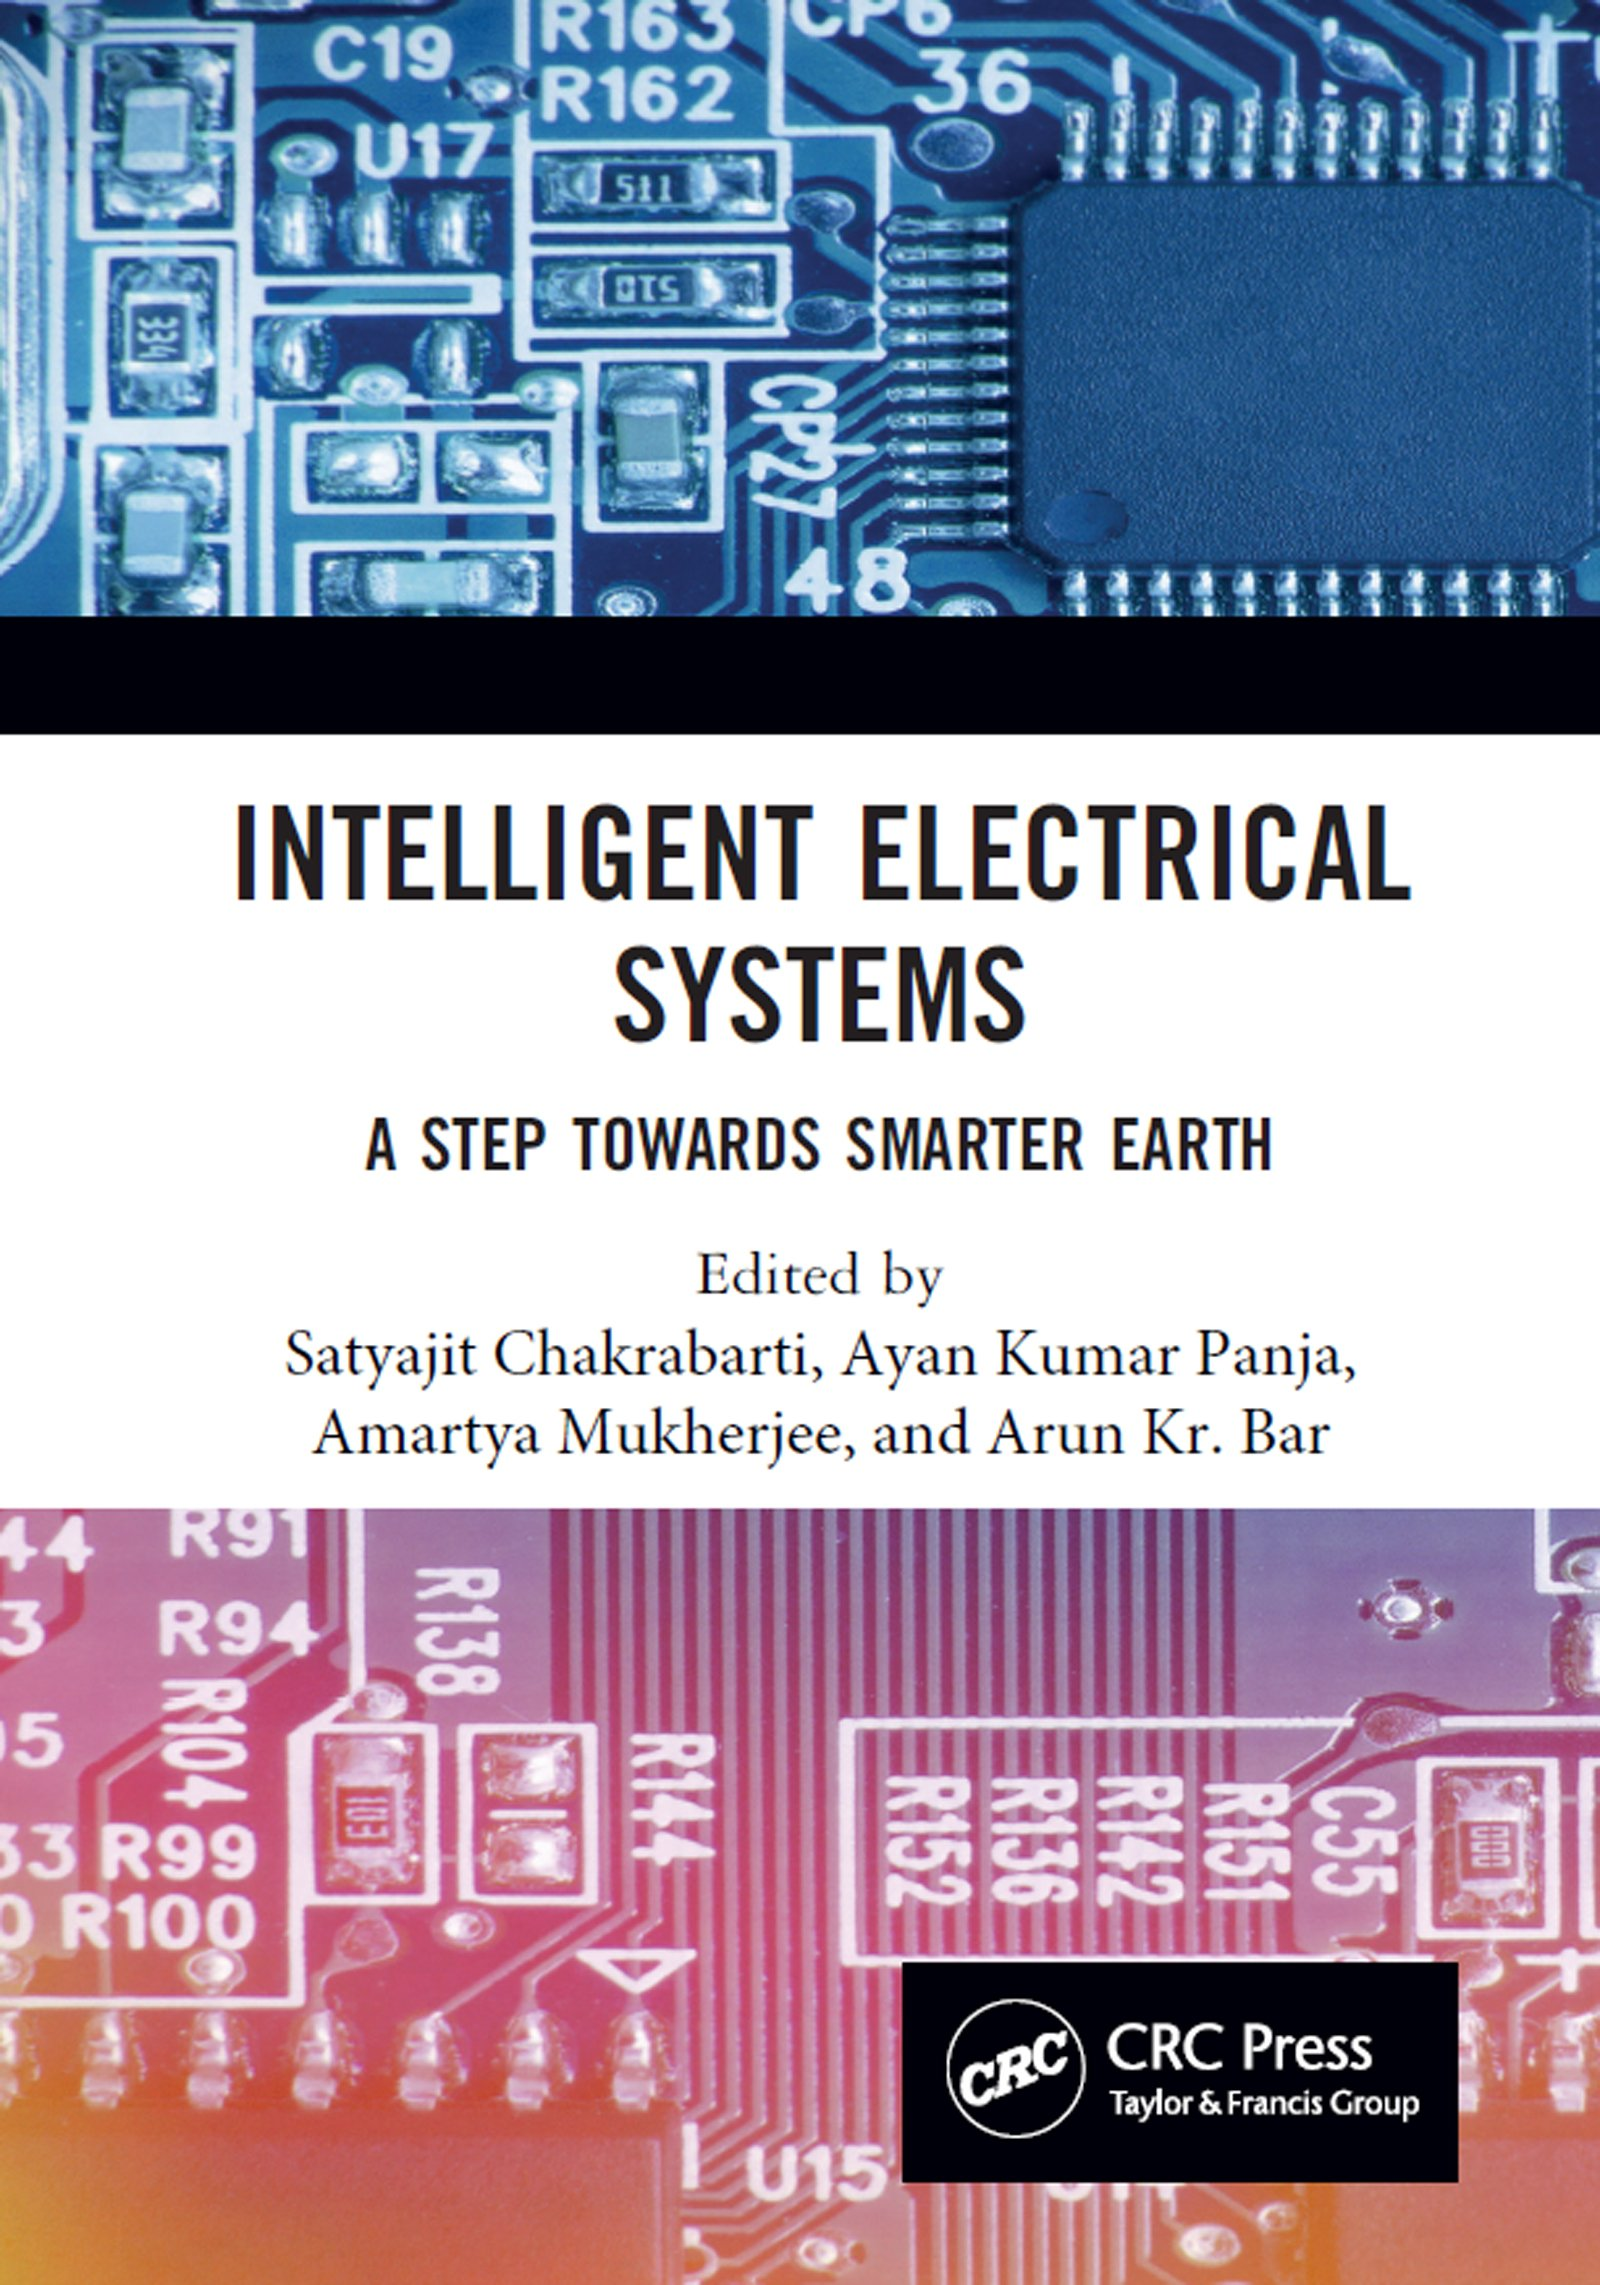 Intelligent Electrical Systems: A Step towards Smarter Earth